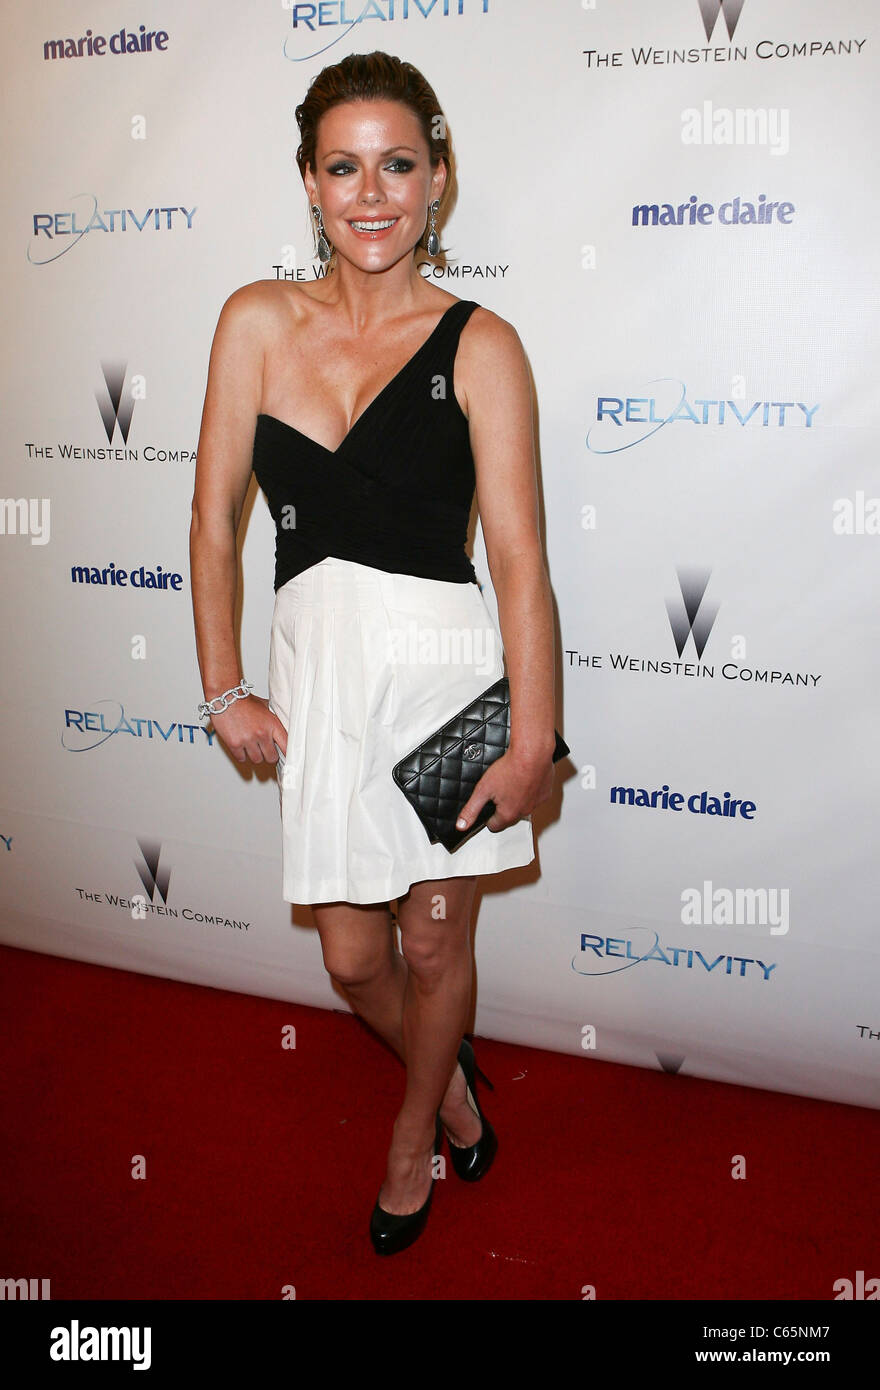 Kathleen Robertson at the after-party for The Weinstein Company and Relativity Media 2011 Golden Globes After Party, - Stock Image